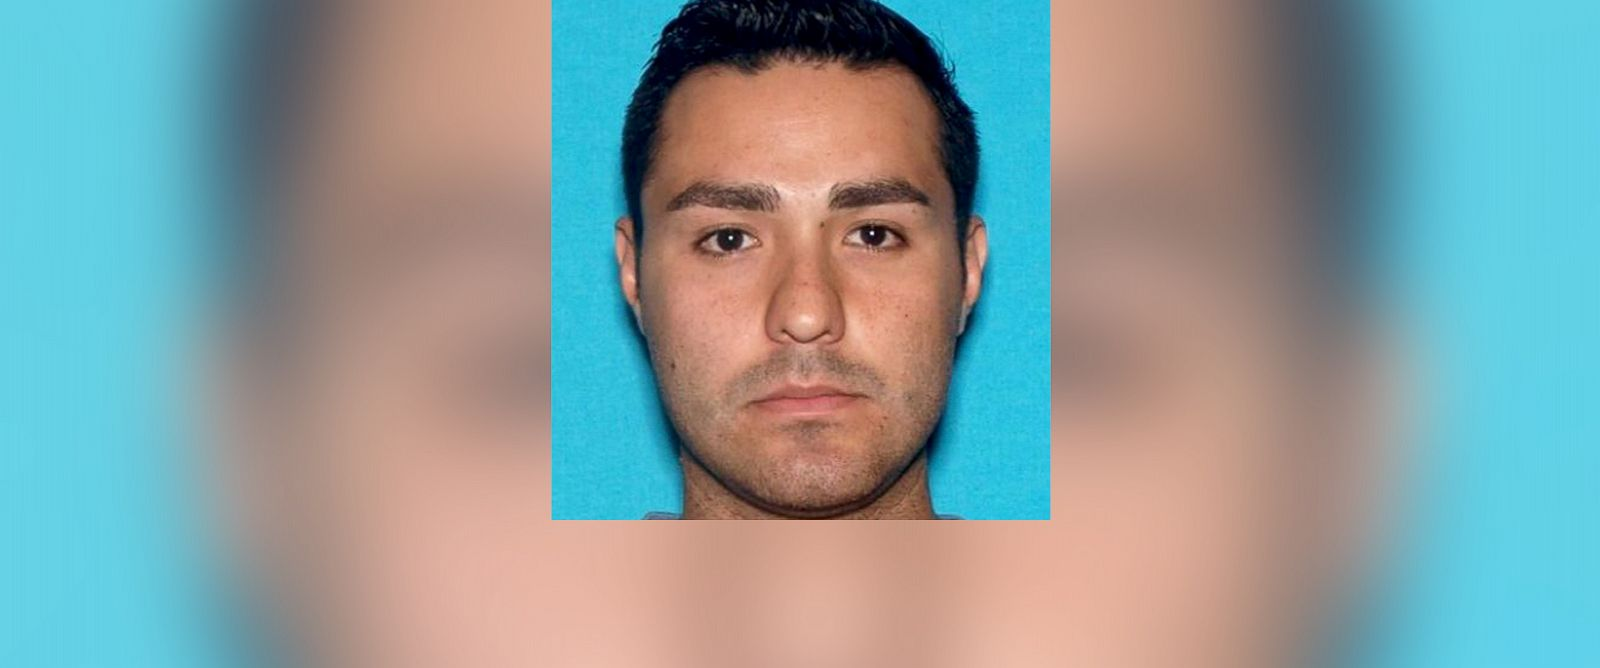 PHOTO: LAPD Officer Henry Solis is wanted as a person of interest in a homicide investigation.